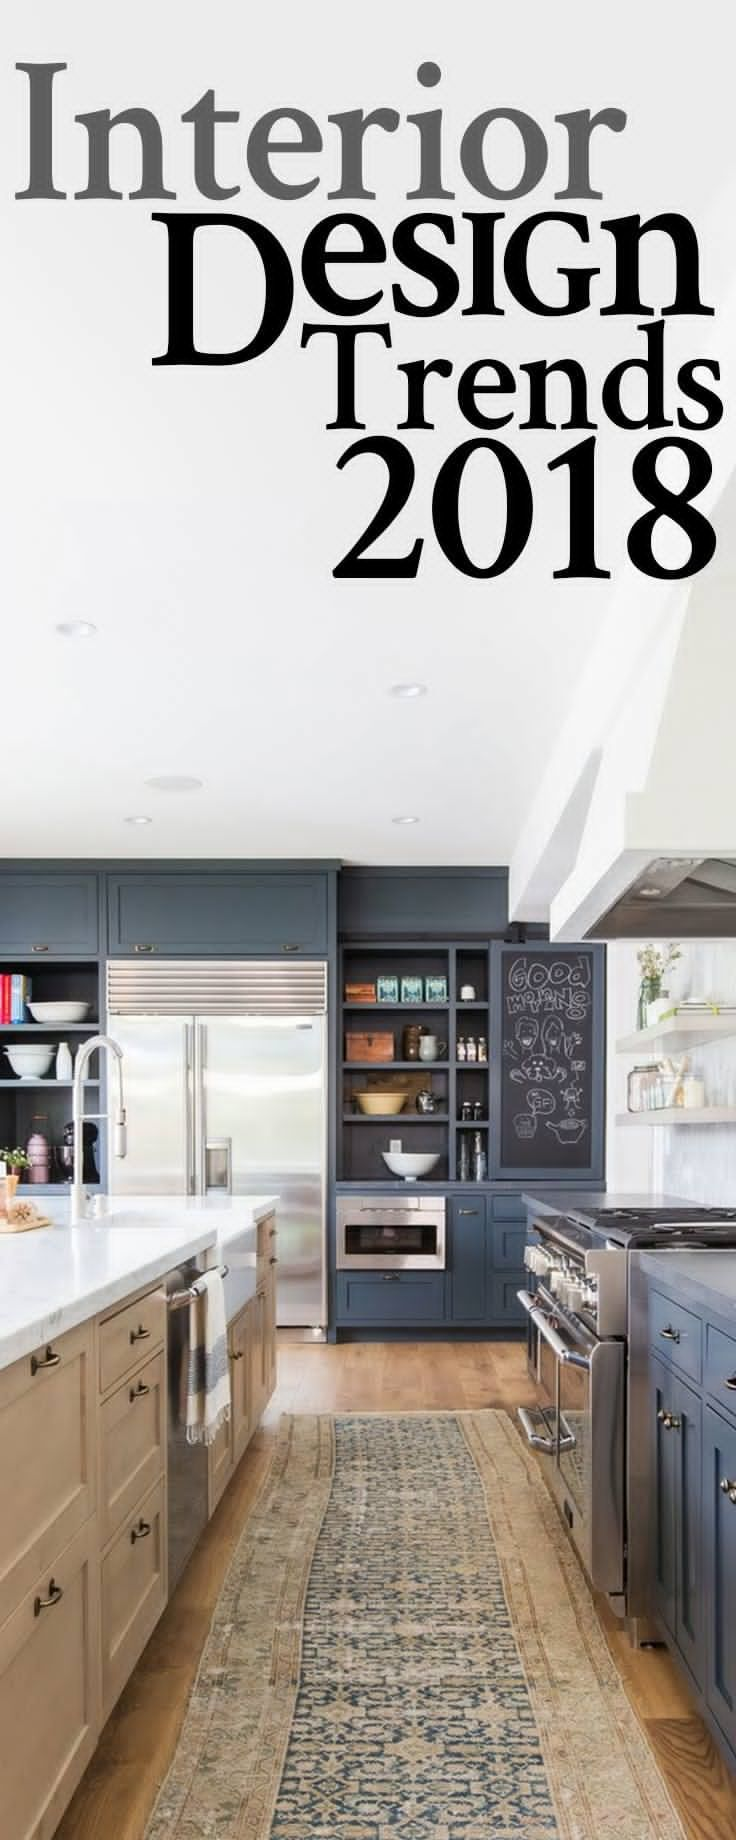 Everyoneu0027s Looking Forward To A New Year And To A New Chapter In Life. As  We Wait For 2018 To Come Over, Why Donu0027t We Look Into These Upcoming Home  Style ...